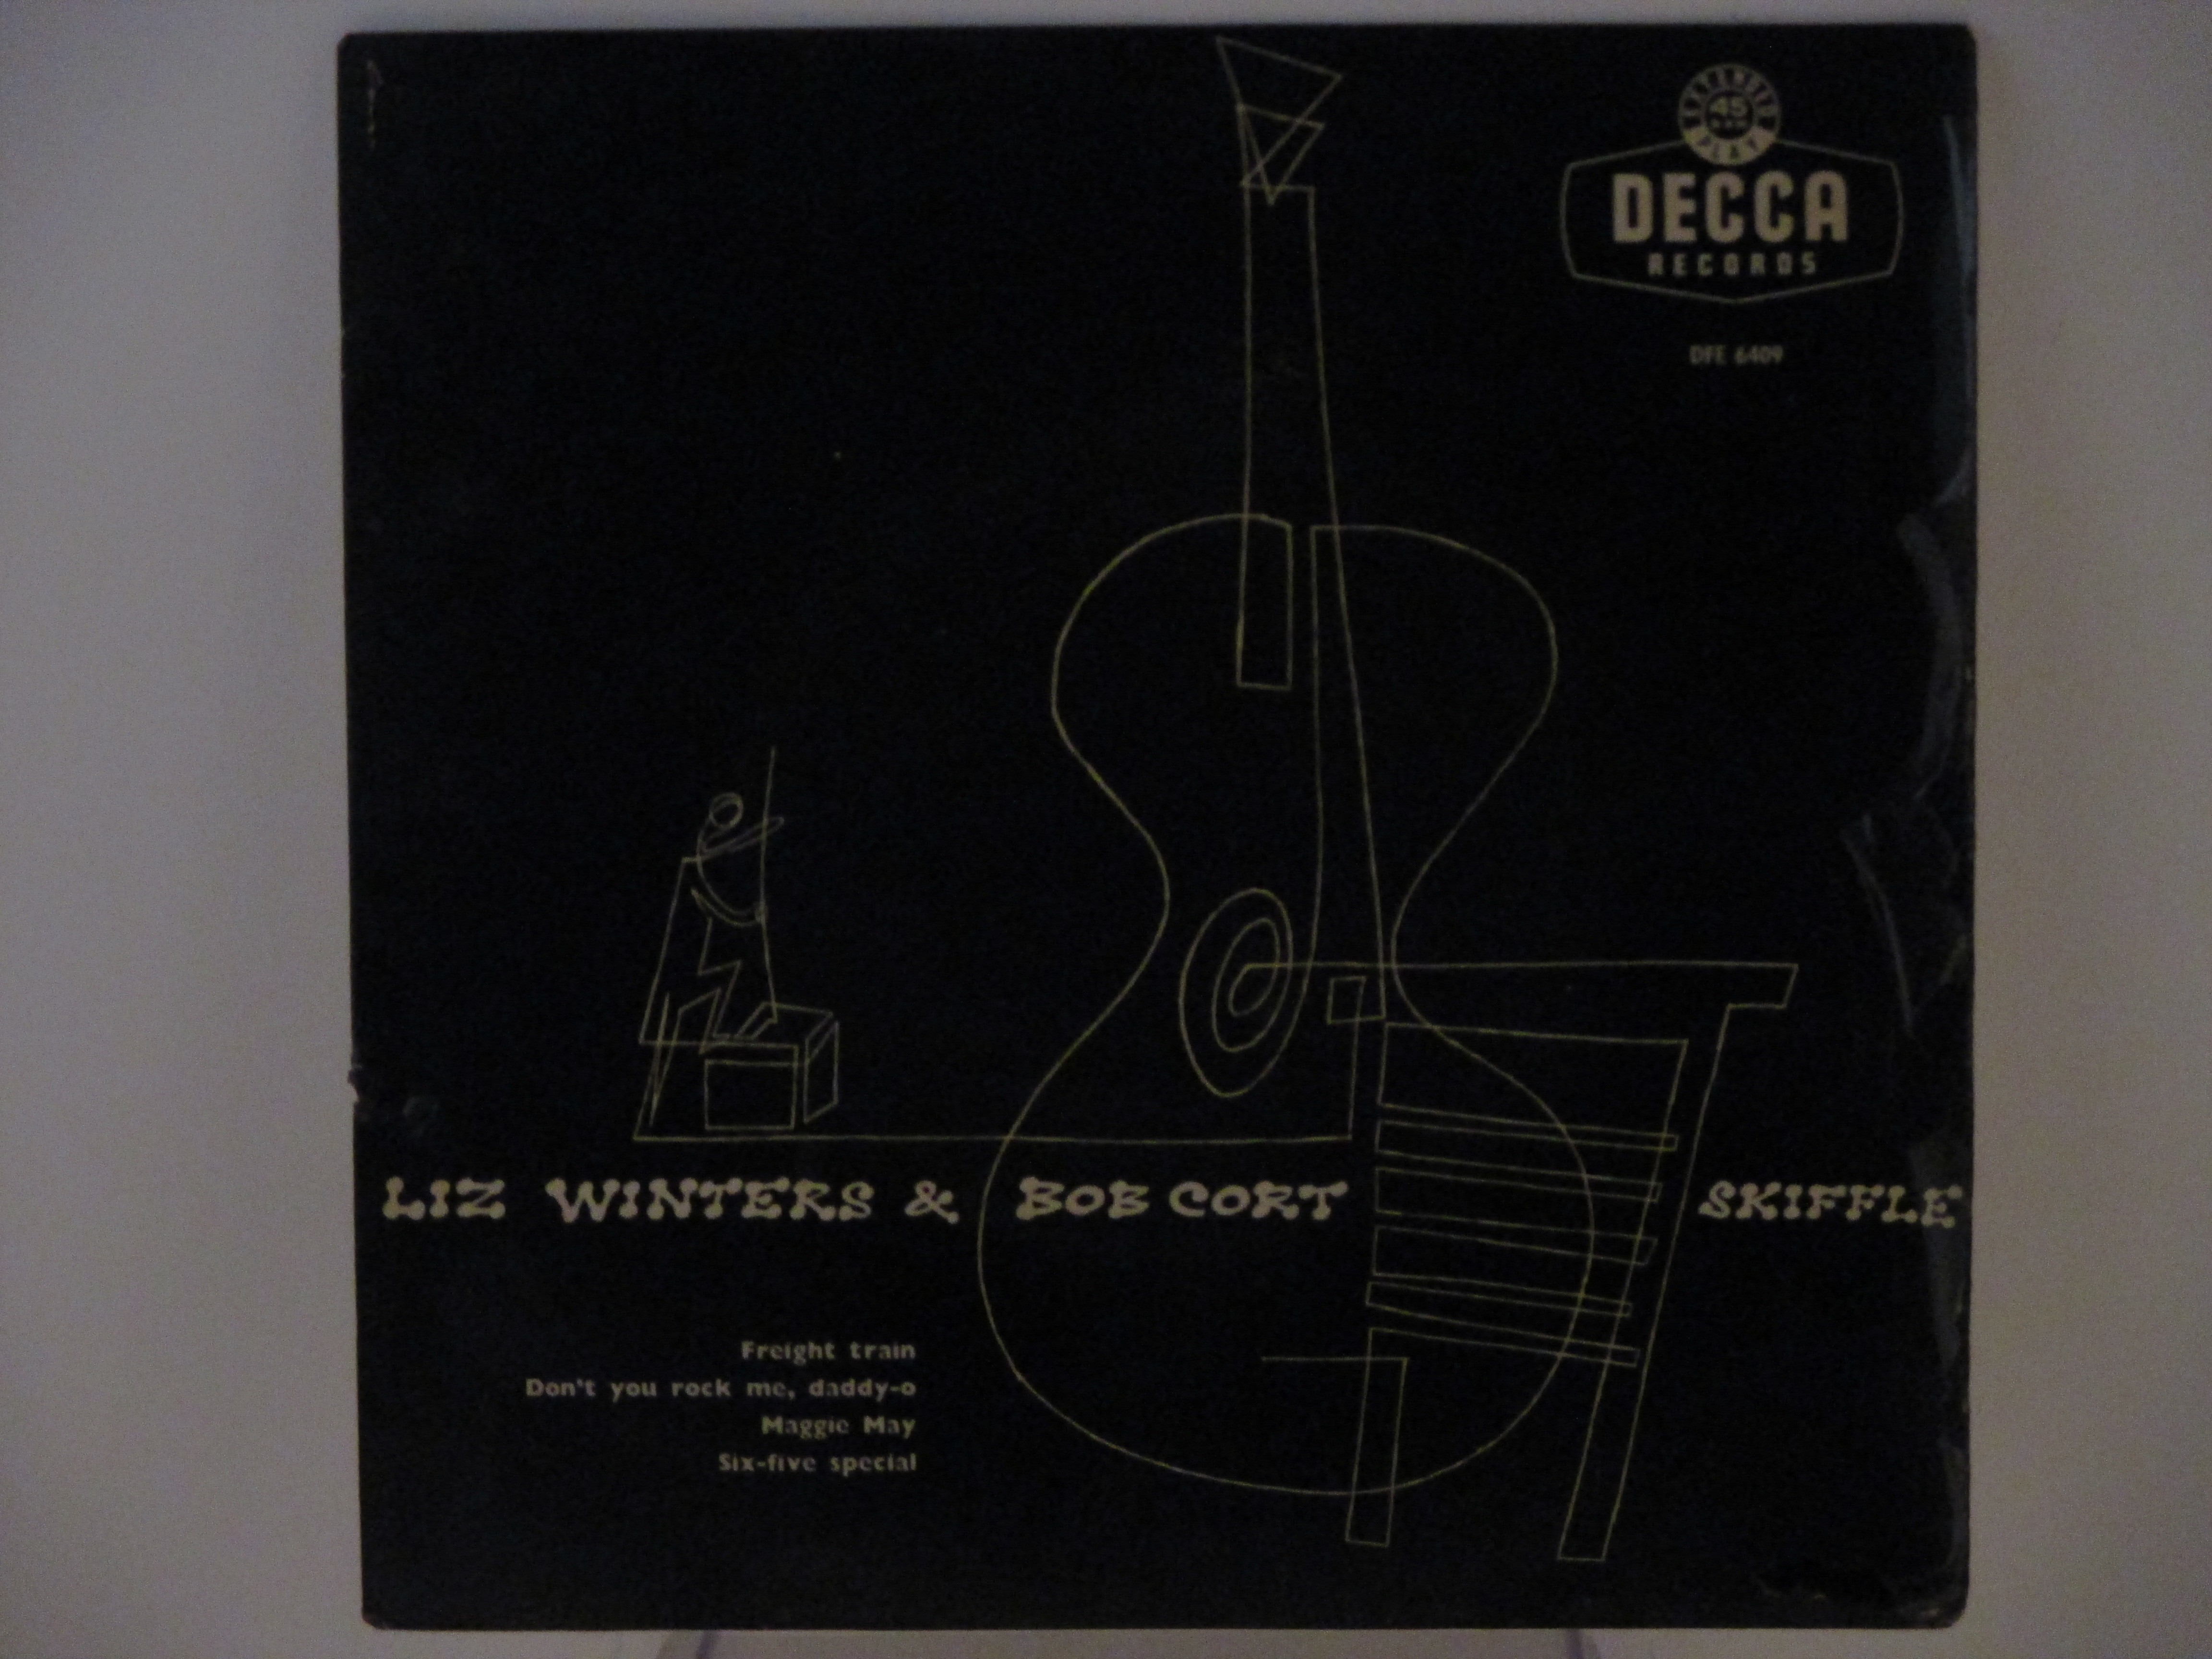 LIZ WINTER & BOB CORT SKIFFLE GROUP : (EP) Freight train / Don't you rock me daddy-o / Maggie May / Six-five special